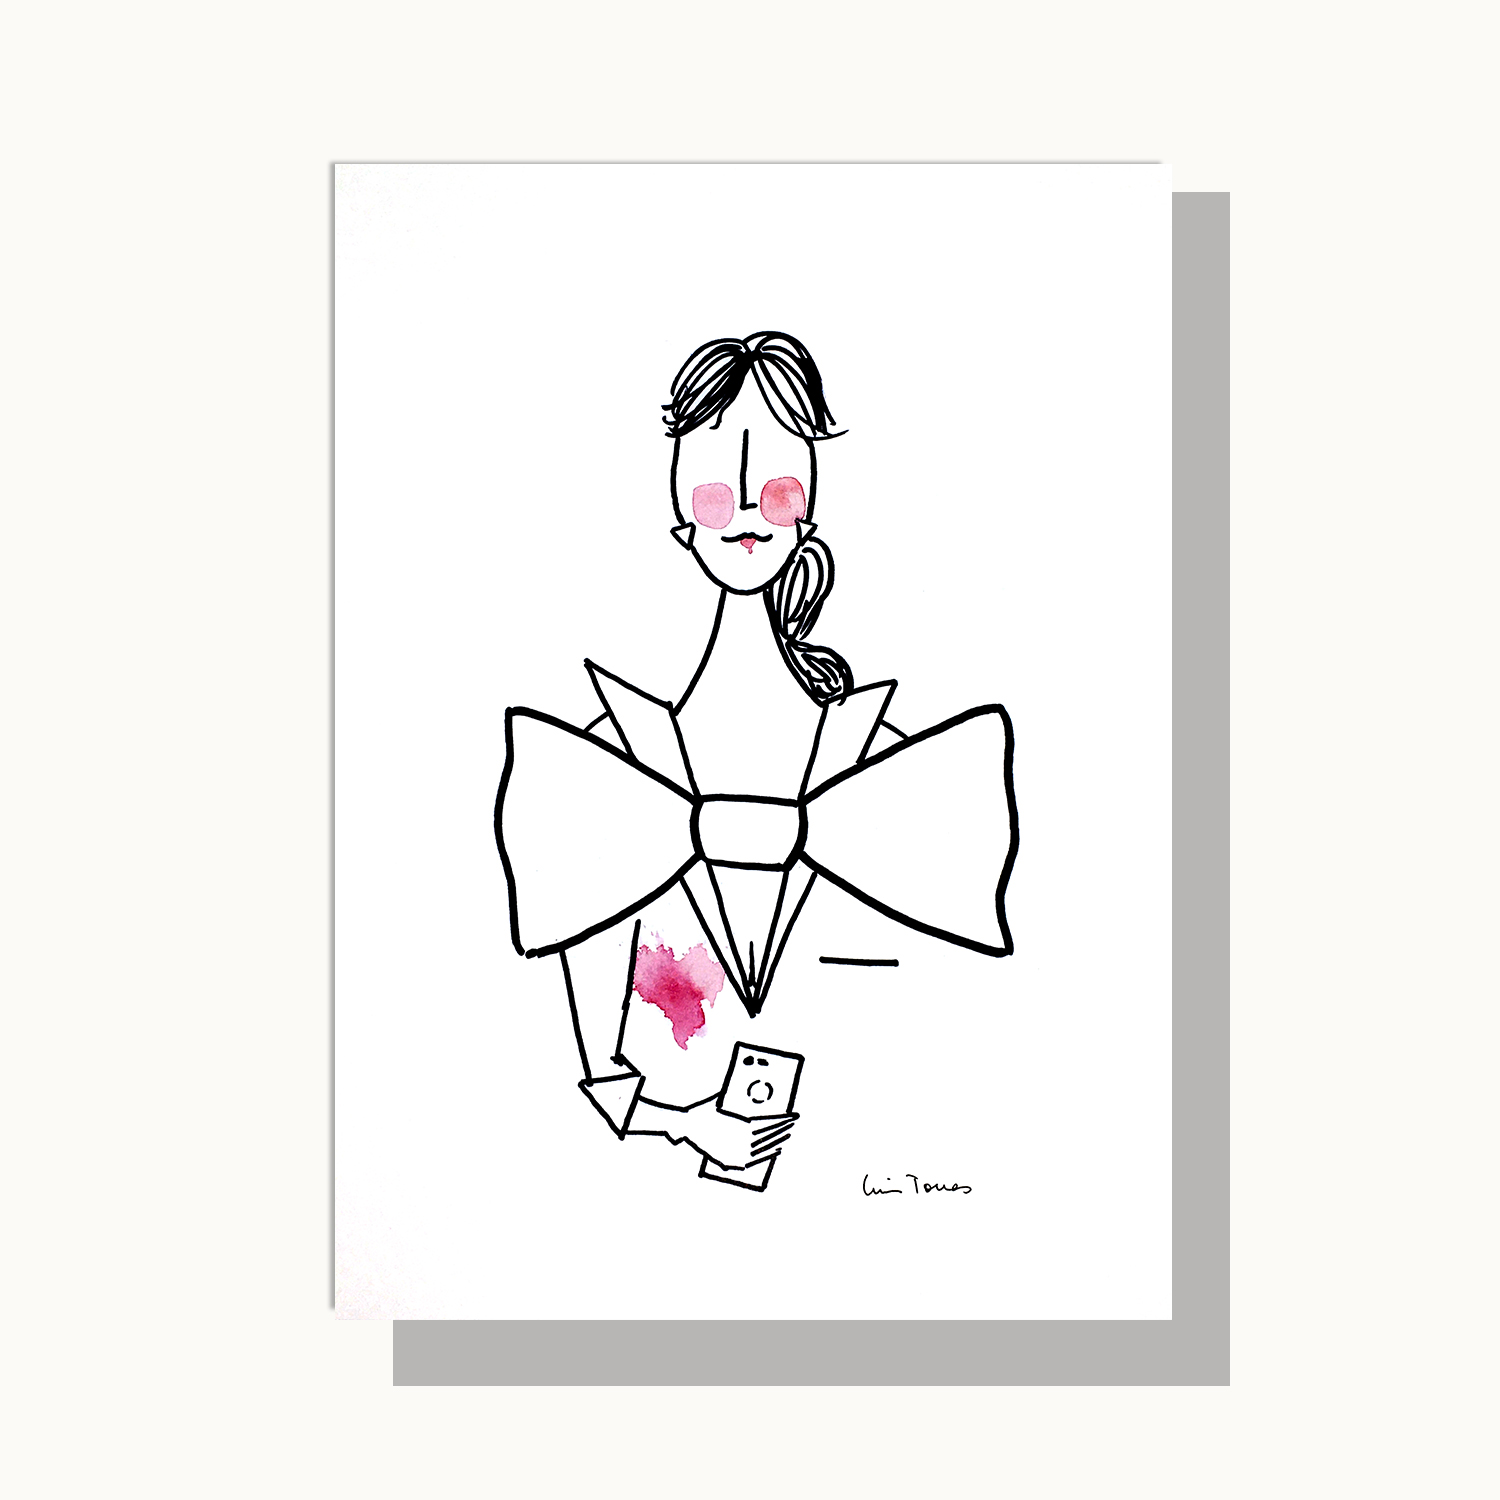 Ilustración Bowtery de mujer con pajarita y teléfono móvil personalizable. Illustration customize woman with bow tie and mobile phone business